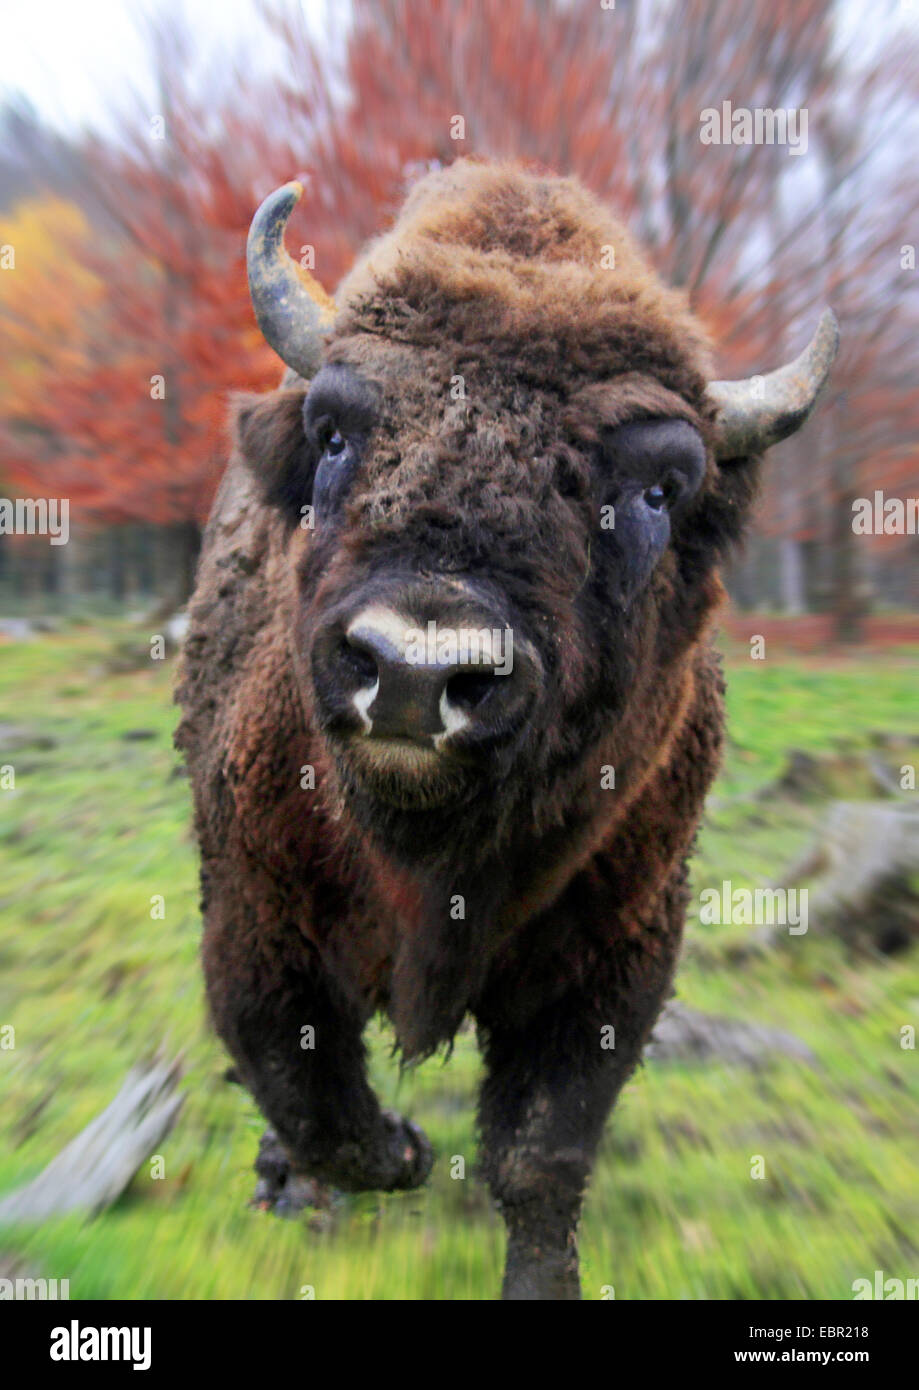 European bison, wisent (Bison bonasus), attacking the photographer, Germany - Stock Image